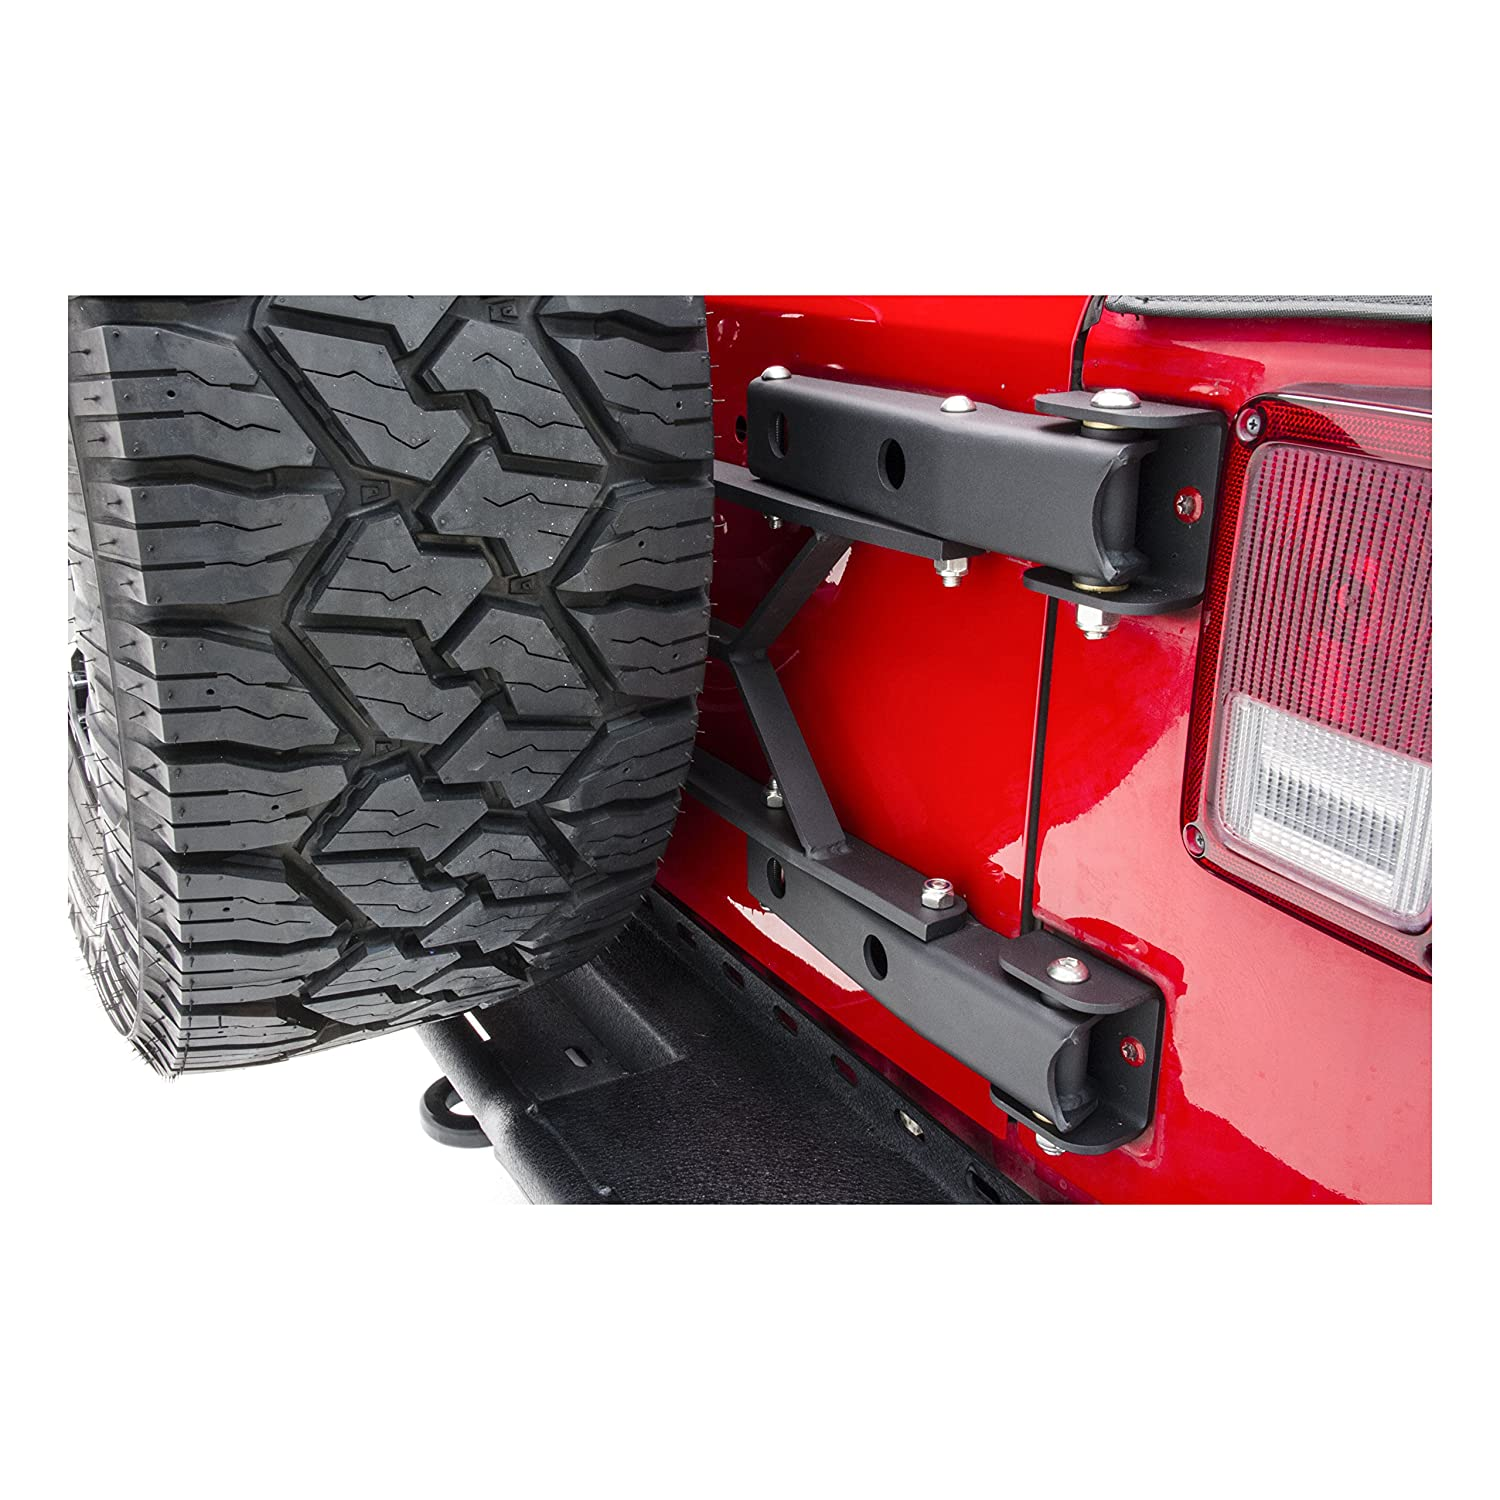 ARIES 2563000 Jeep Wrangler JK Heavy-Duty Adjustable Rear Door Spare Tire Carrier for Up to 37-Inch Wheels